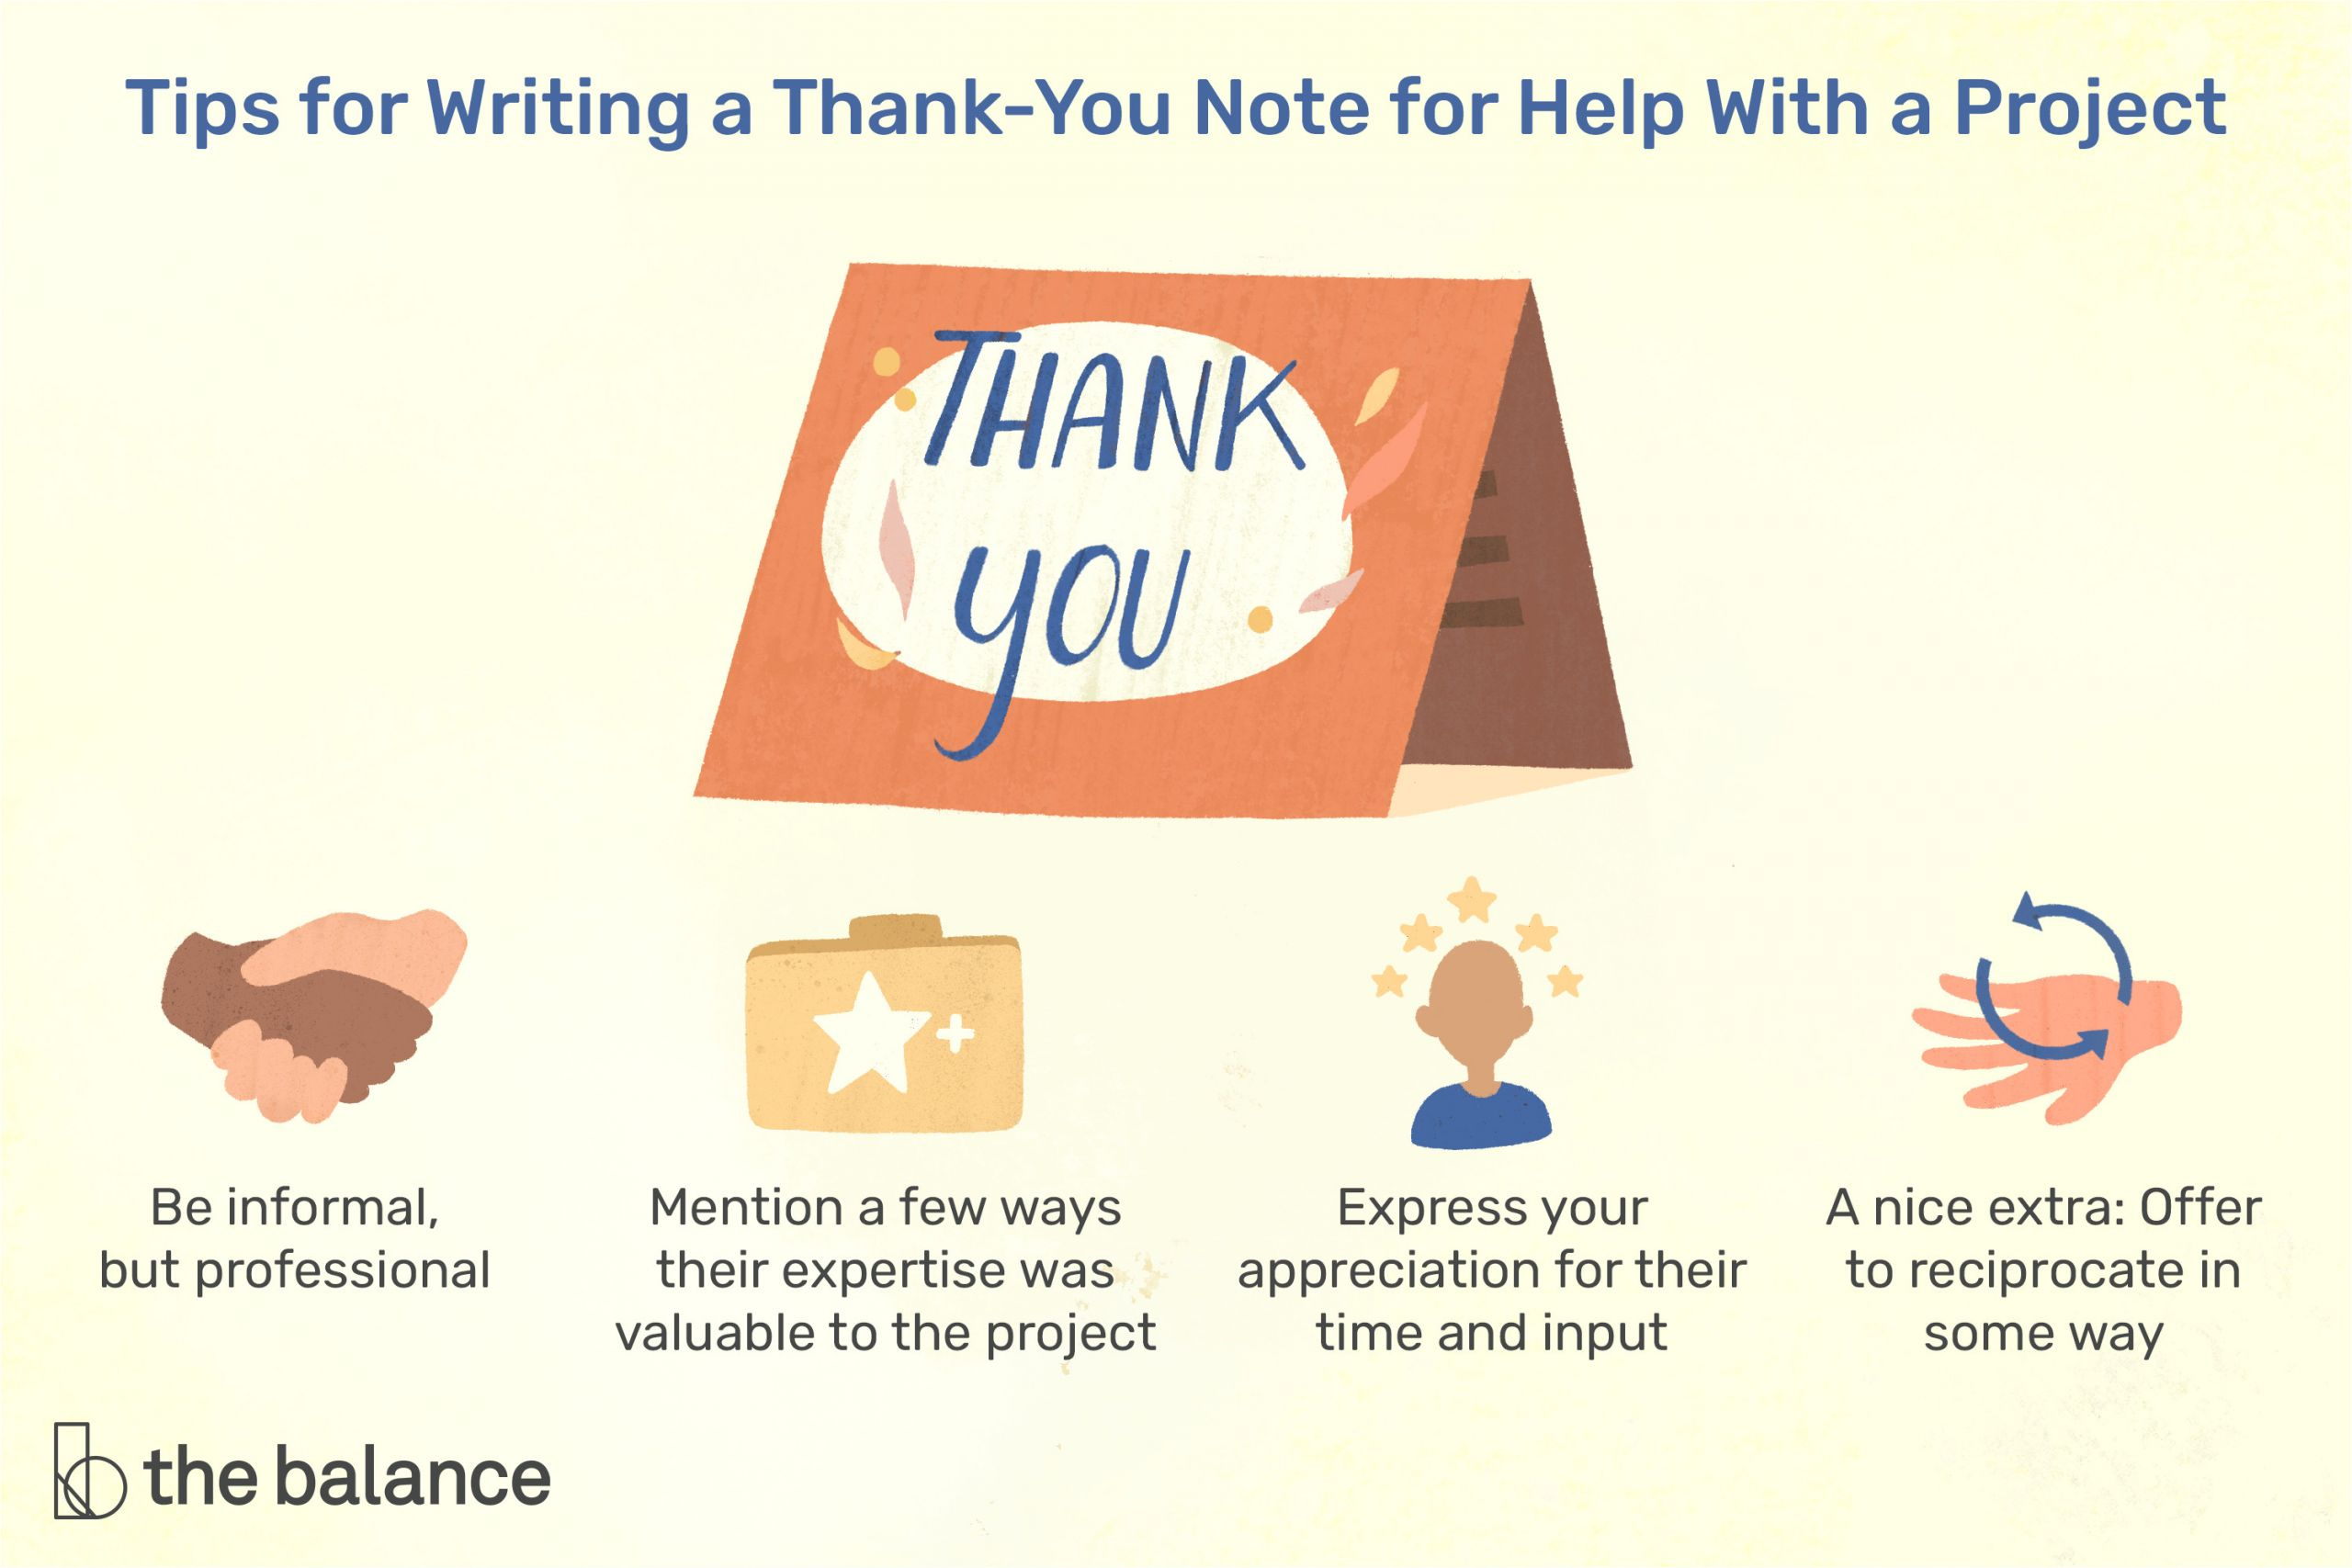 sample thank you letters for help with a project 2059495 final 621fa58879ce4493aa9633237d59887f png